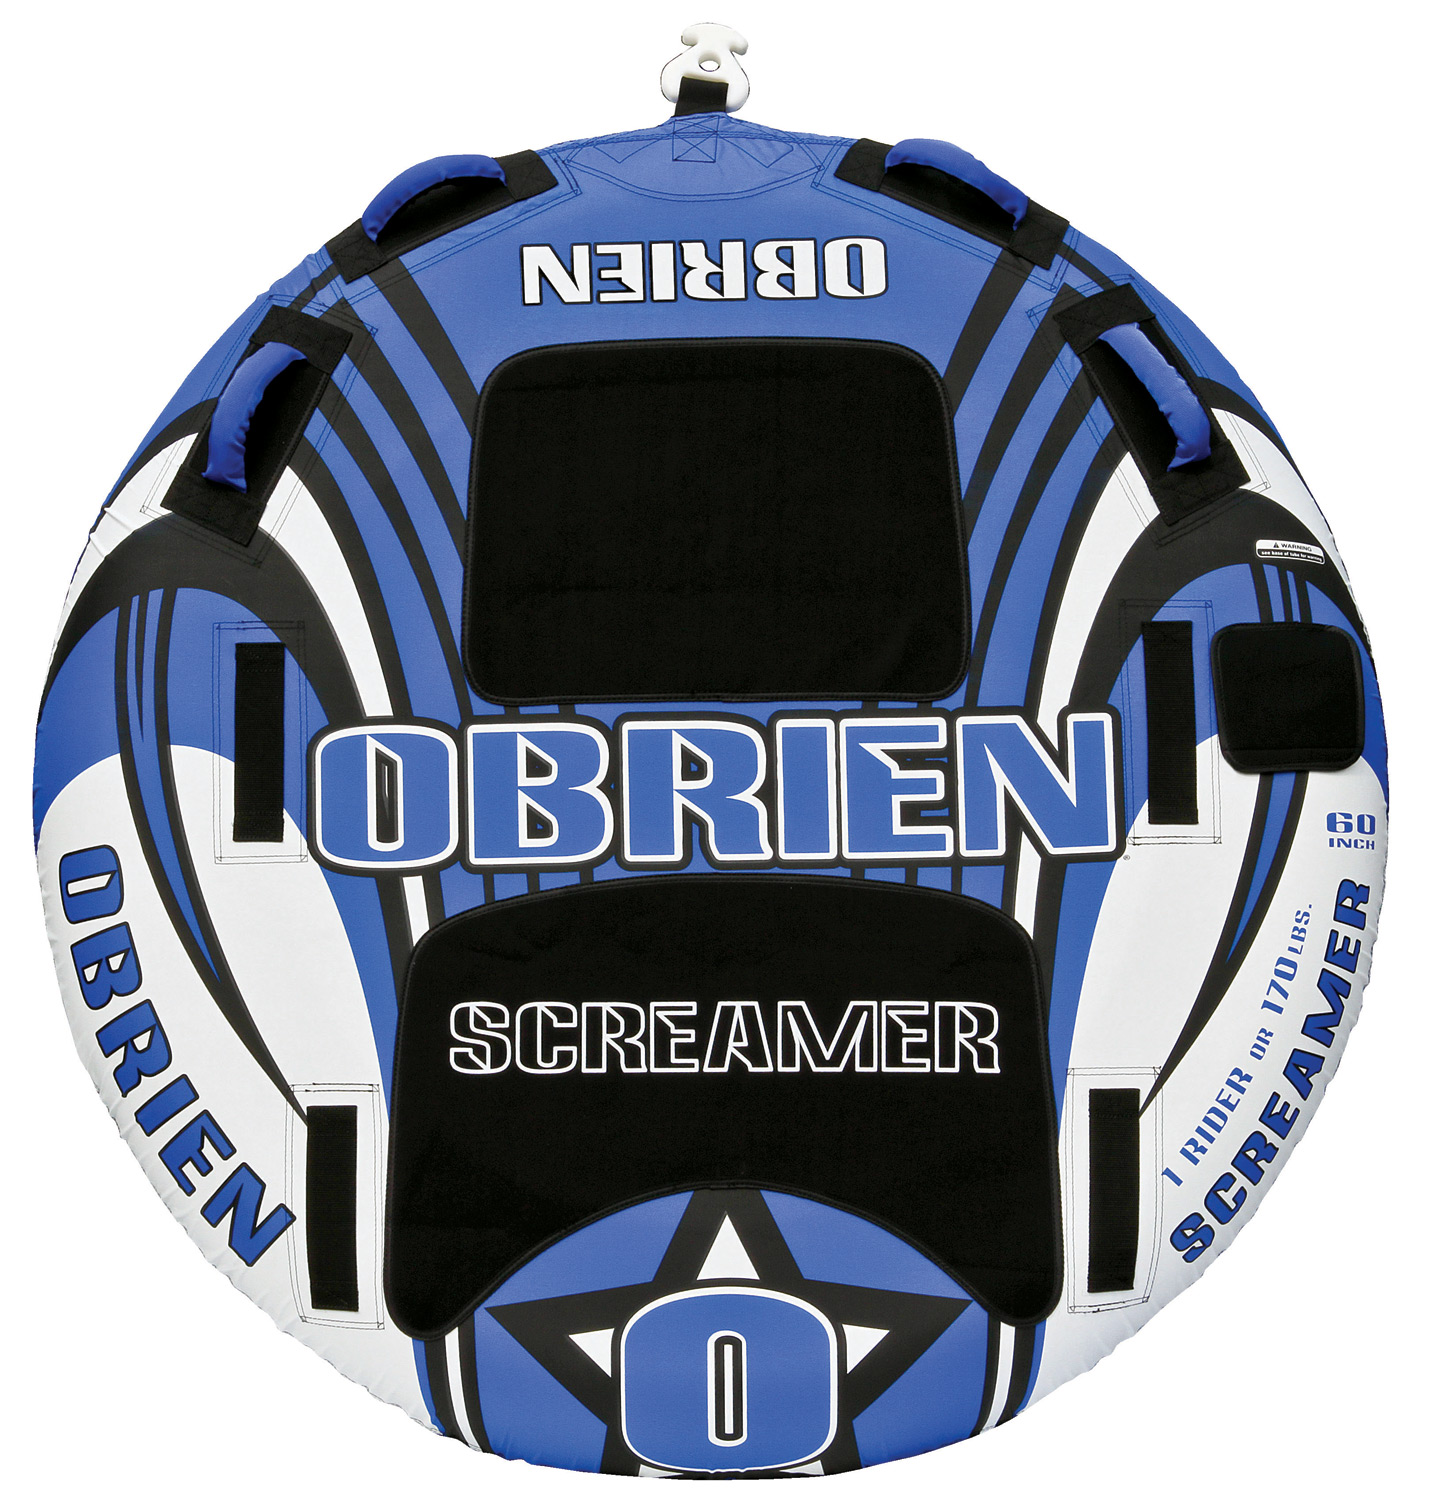 "Key Features of the O'Brien Screamer Tube: 60"" 1 Rider 26 Gauge Pvc Fully Covered 420 D Nylon 4 Handles W/ Eva Knuckle-Guards 2 Eva Pads 1 Quick Connect Hook 1 Boston Valve One Year Limited Warranty - $119.99"